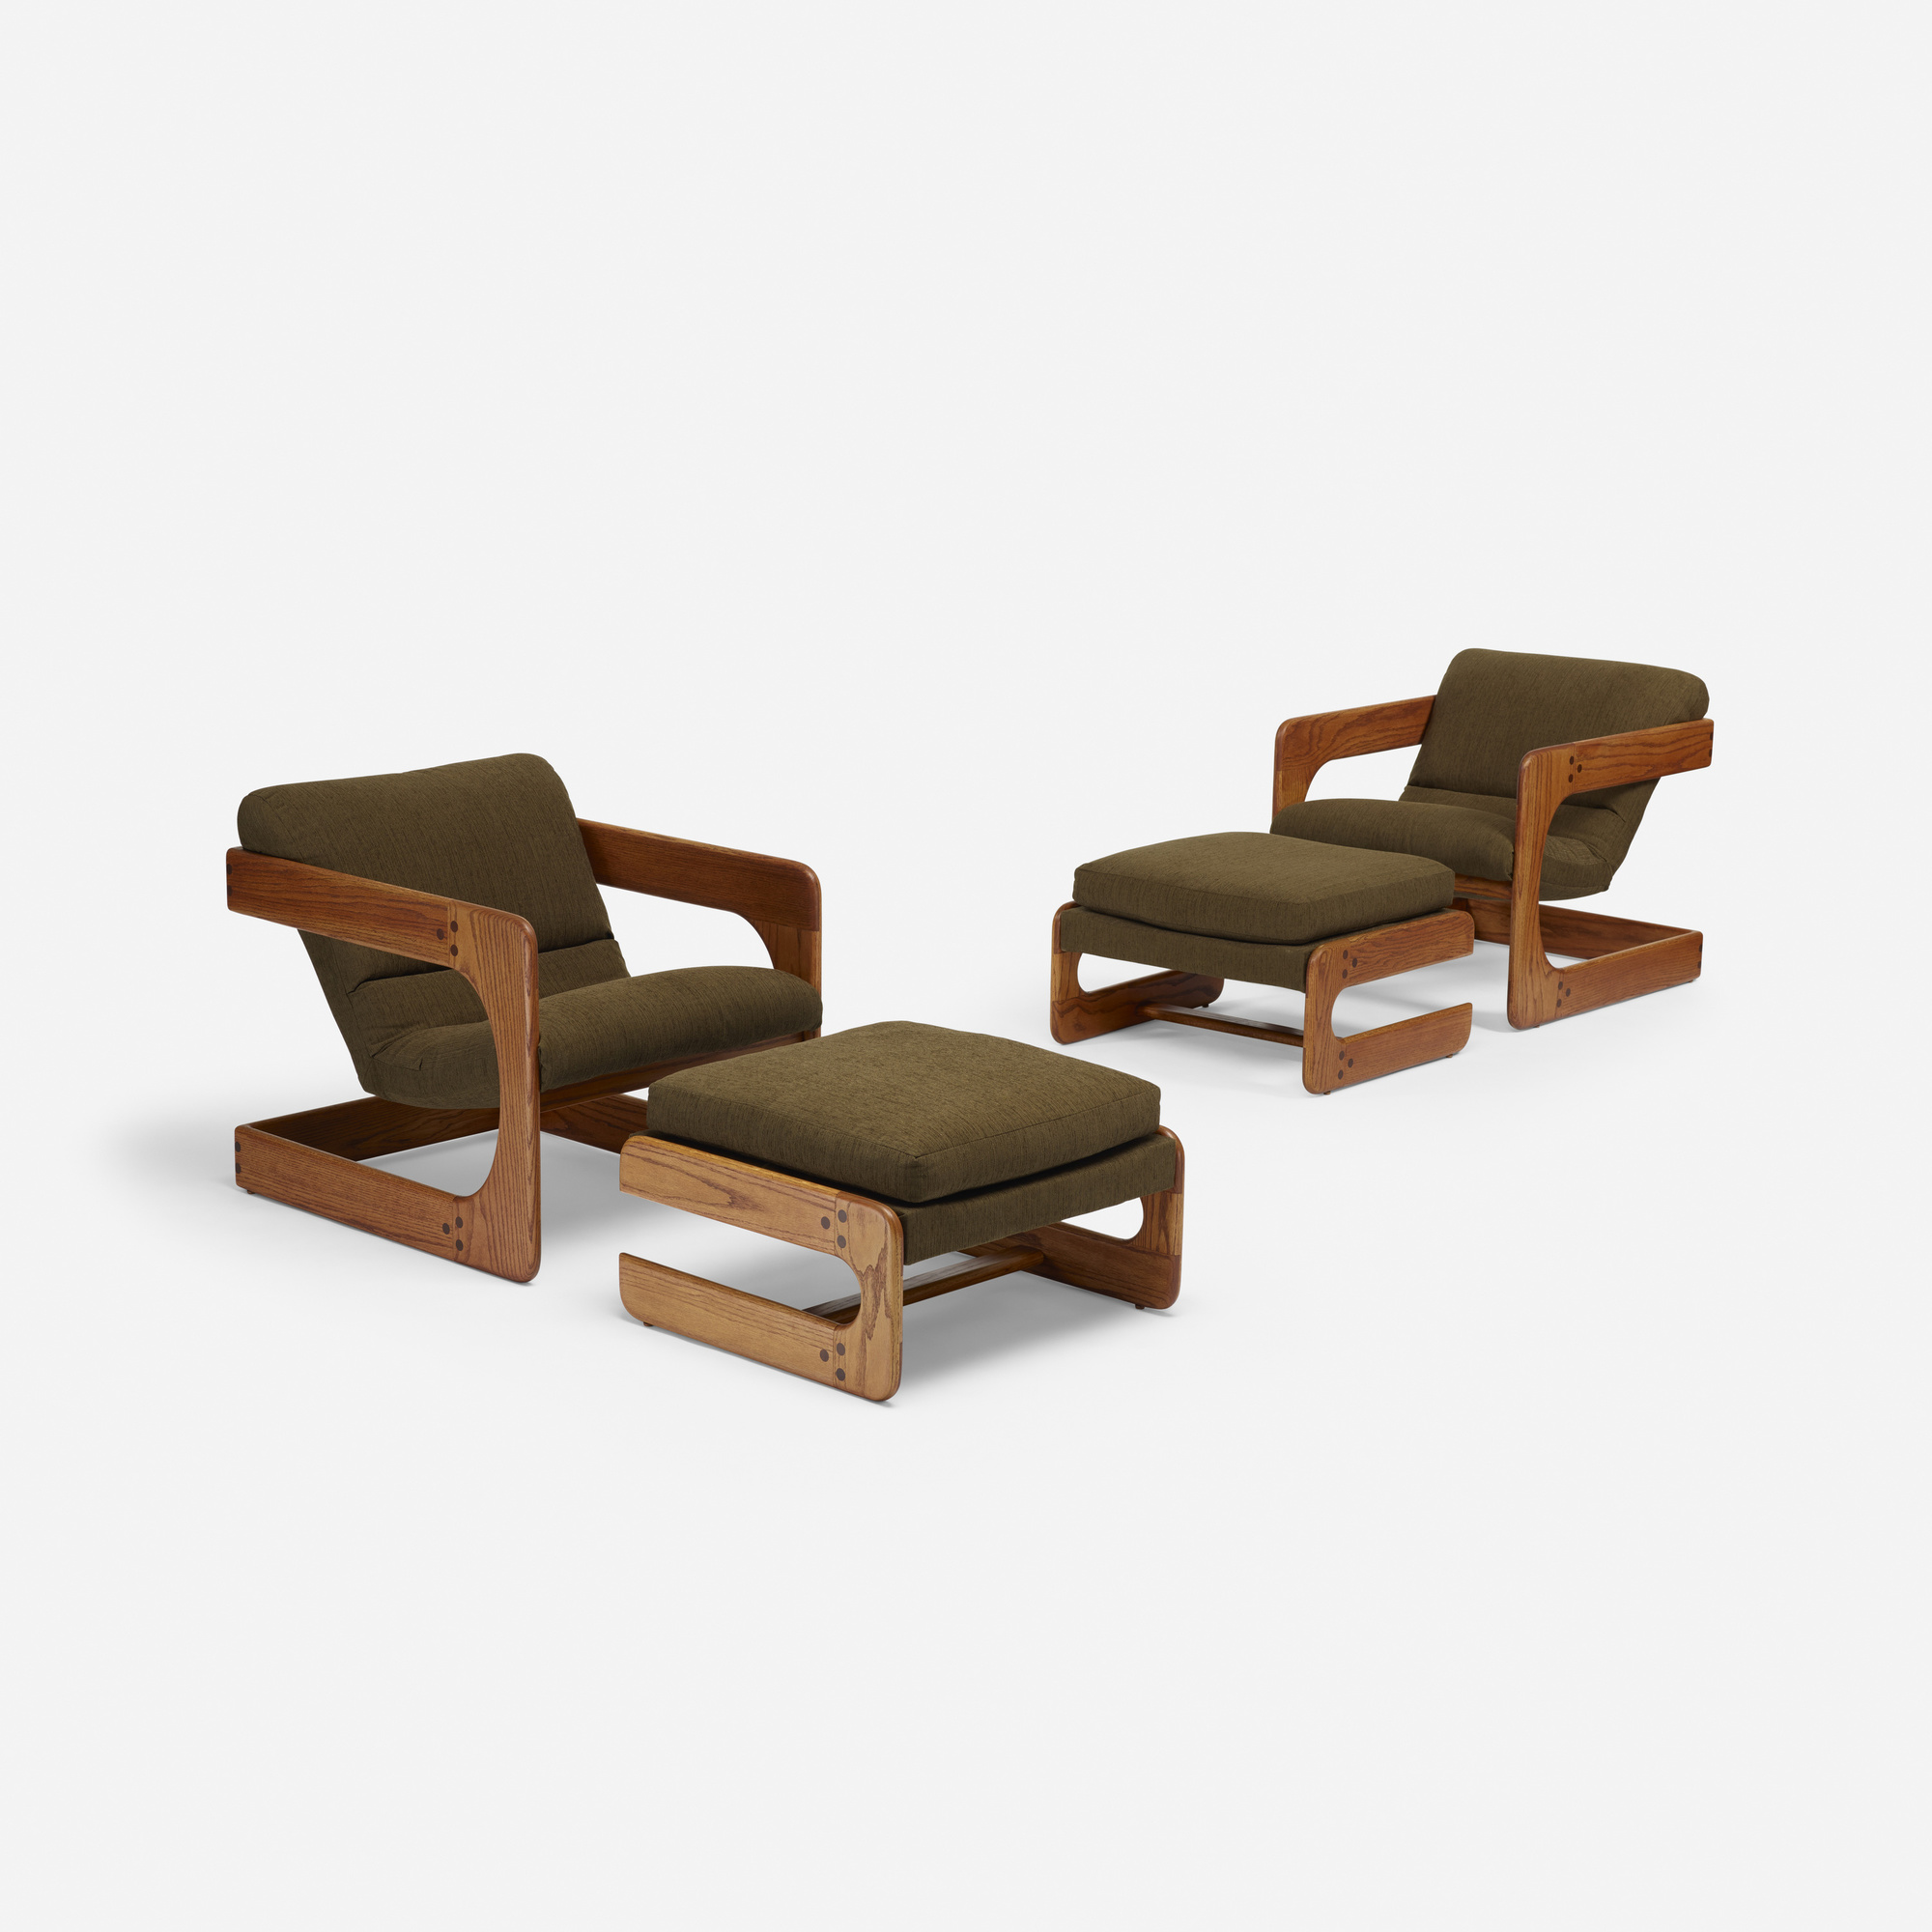 342: Lou Hodges / lounge chairs with ottomans, pair (1 of 1)